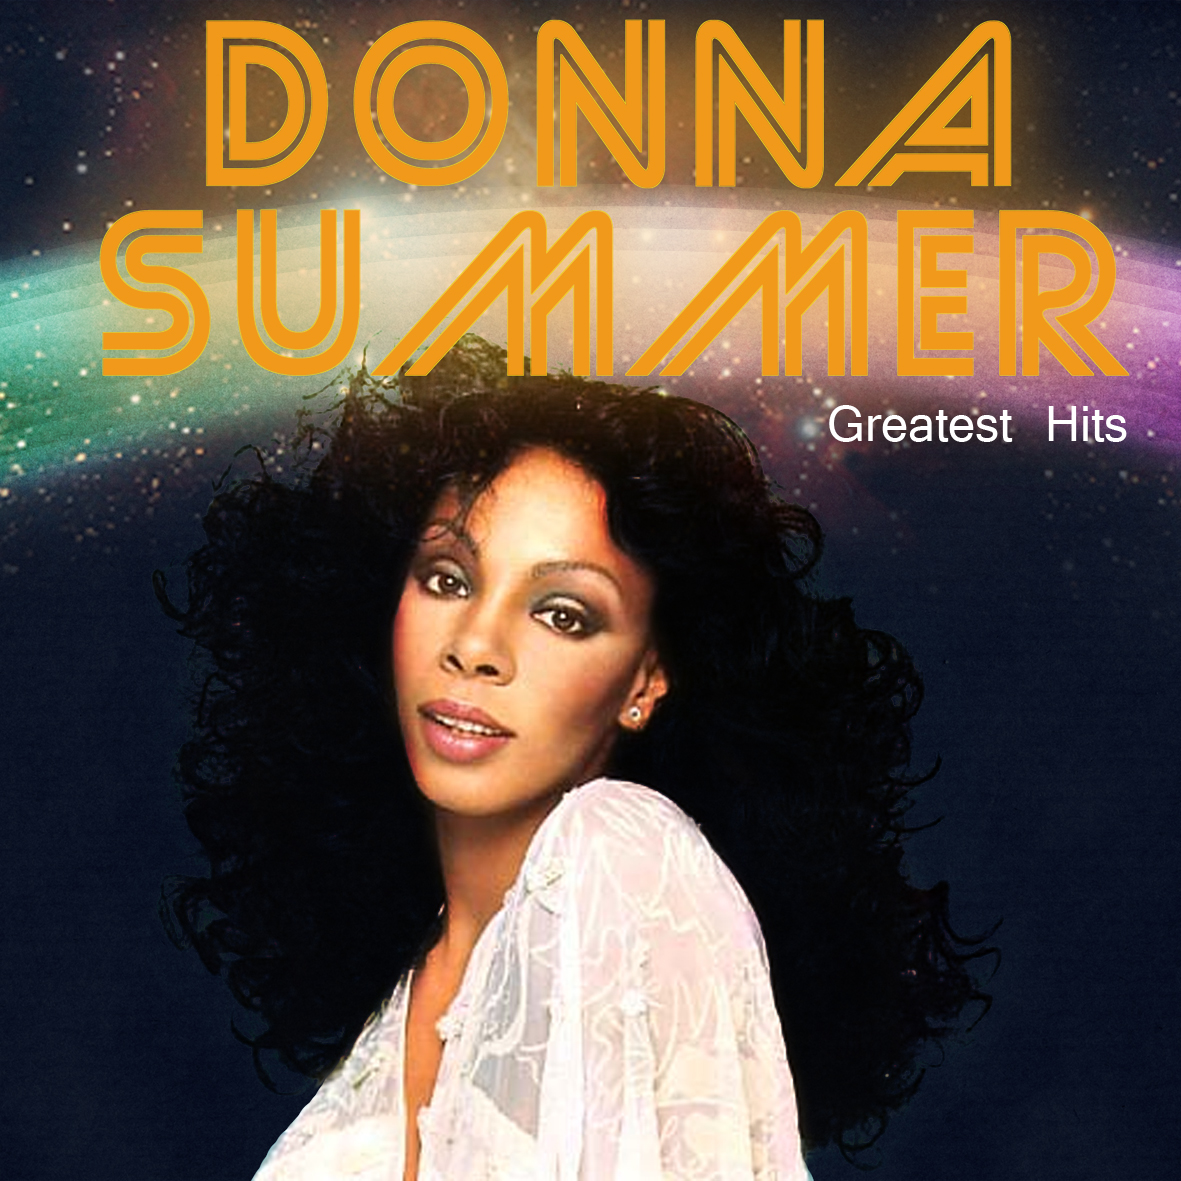 donna summer the wandererdonna summer – hot stuff, donna summer i feel love, donna summer – hot stuff скачать, donna summer слушать, donna summer i feel love скачать, donna summer скачать, donna summer on the radio, donna summer last dance, donna summer mp3, donna summer песни, donna summer last dance скачать, donna summer i remember yesterday, donna summer википедия, donna summer 2012, donna summer discography, donna summer лучшие песни, donna summer i feel love слушать, donna summer i will survive, donna summer youtube, donna summer the wanderer